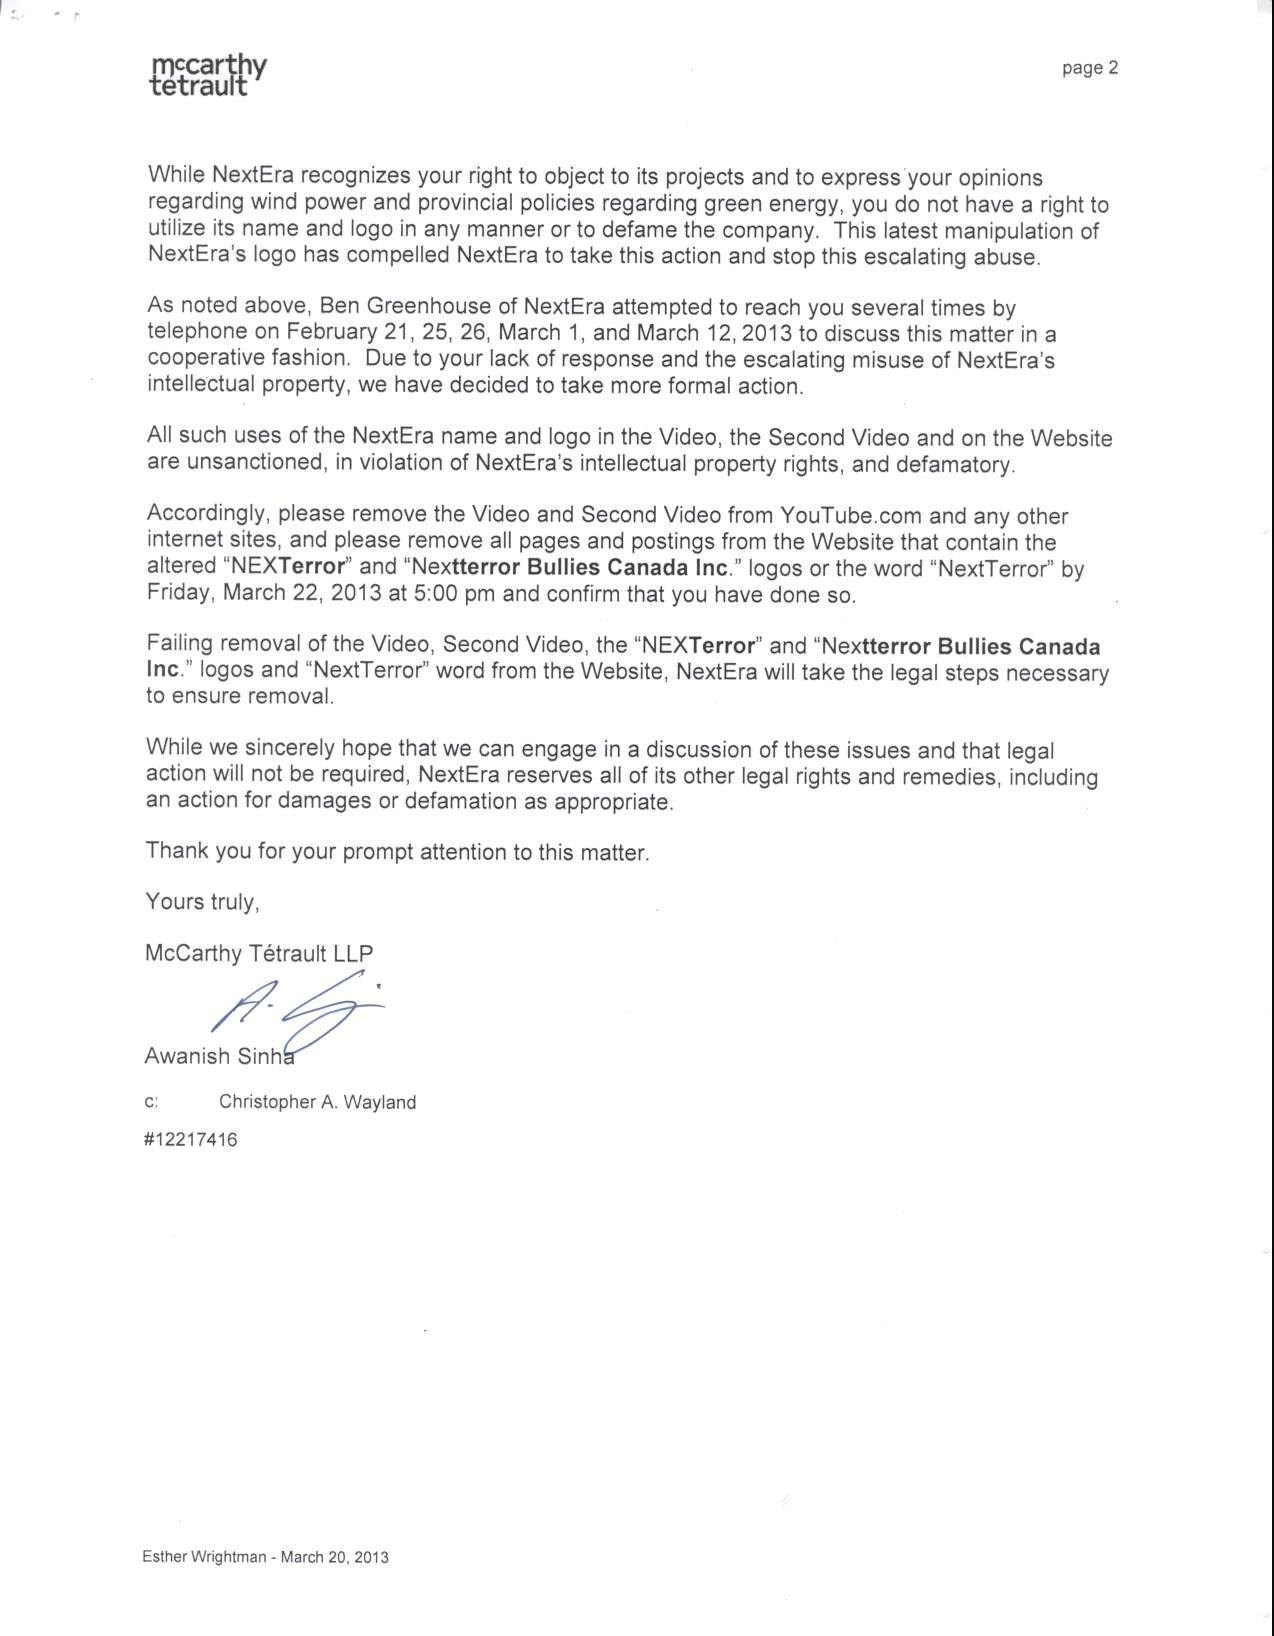 Response to Cease and Desist Letter Template - Inspirational Cease and Desist Letter Example Your Template